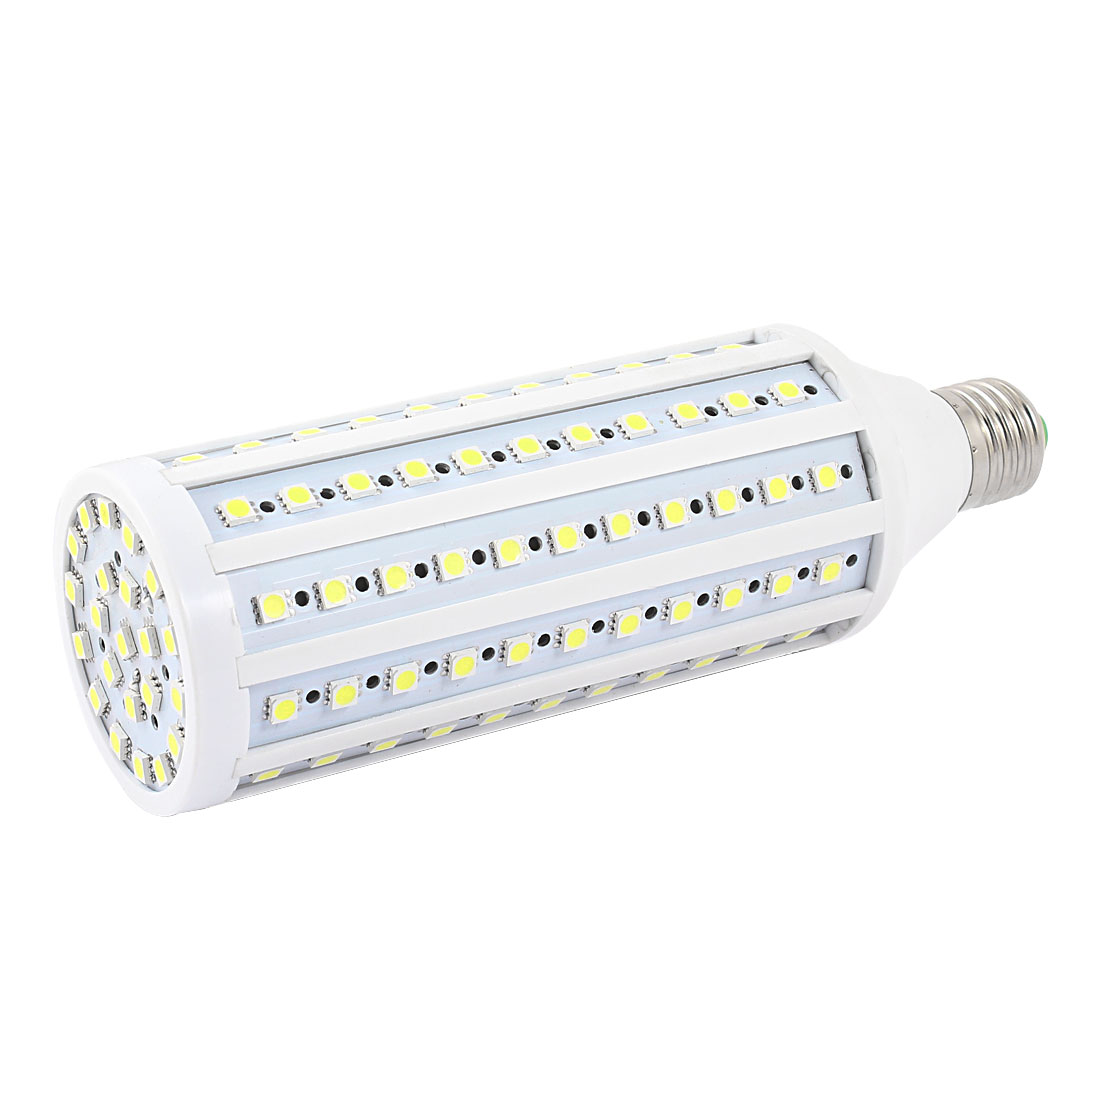 AC 110/220V 2376LM E27 Socket Pure White 132 SMD 5050 LEDs Light Corn Bulb 25W